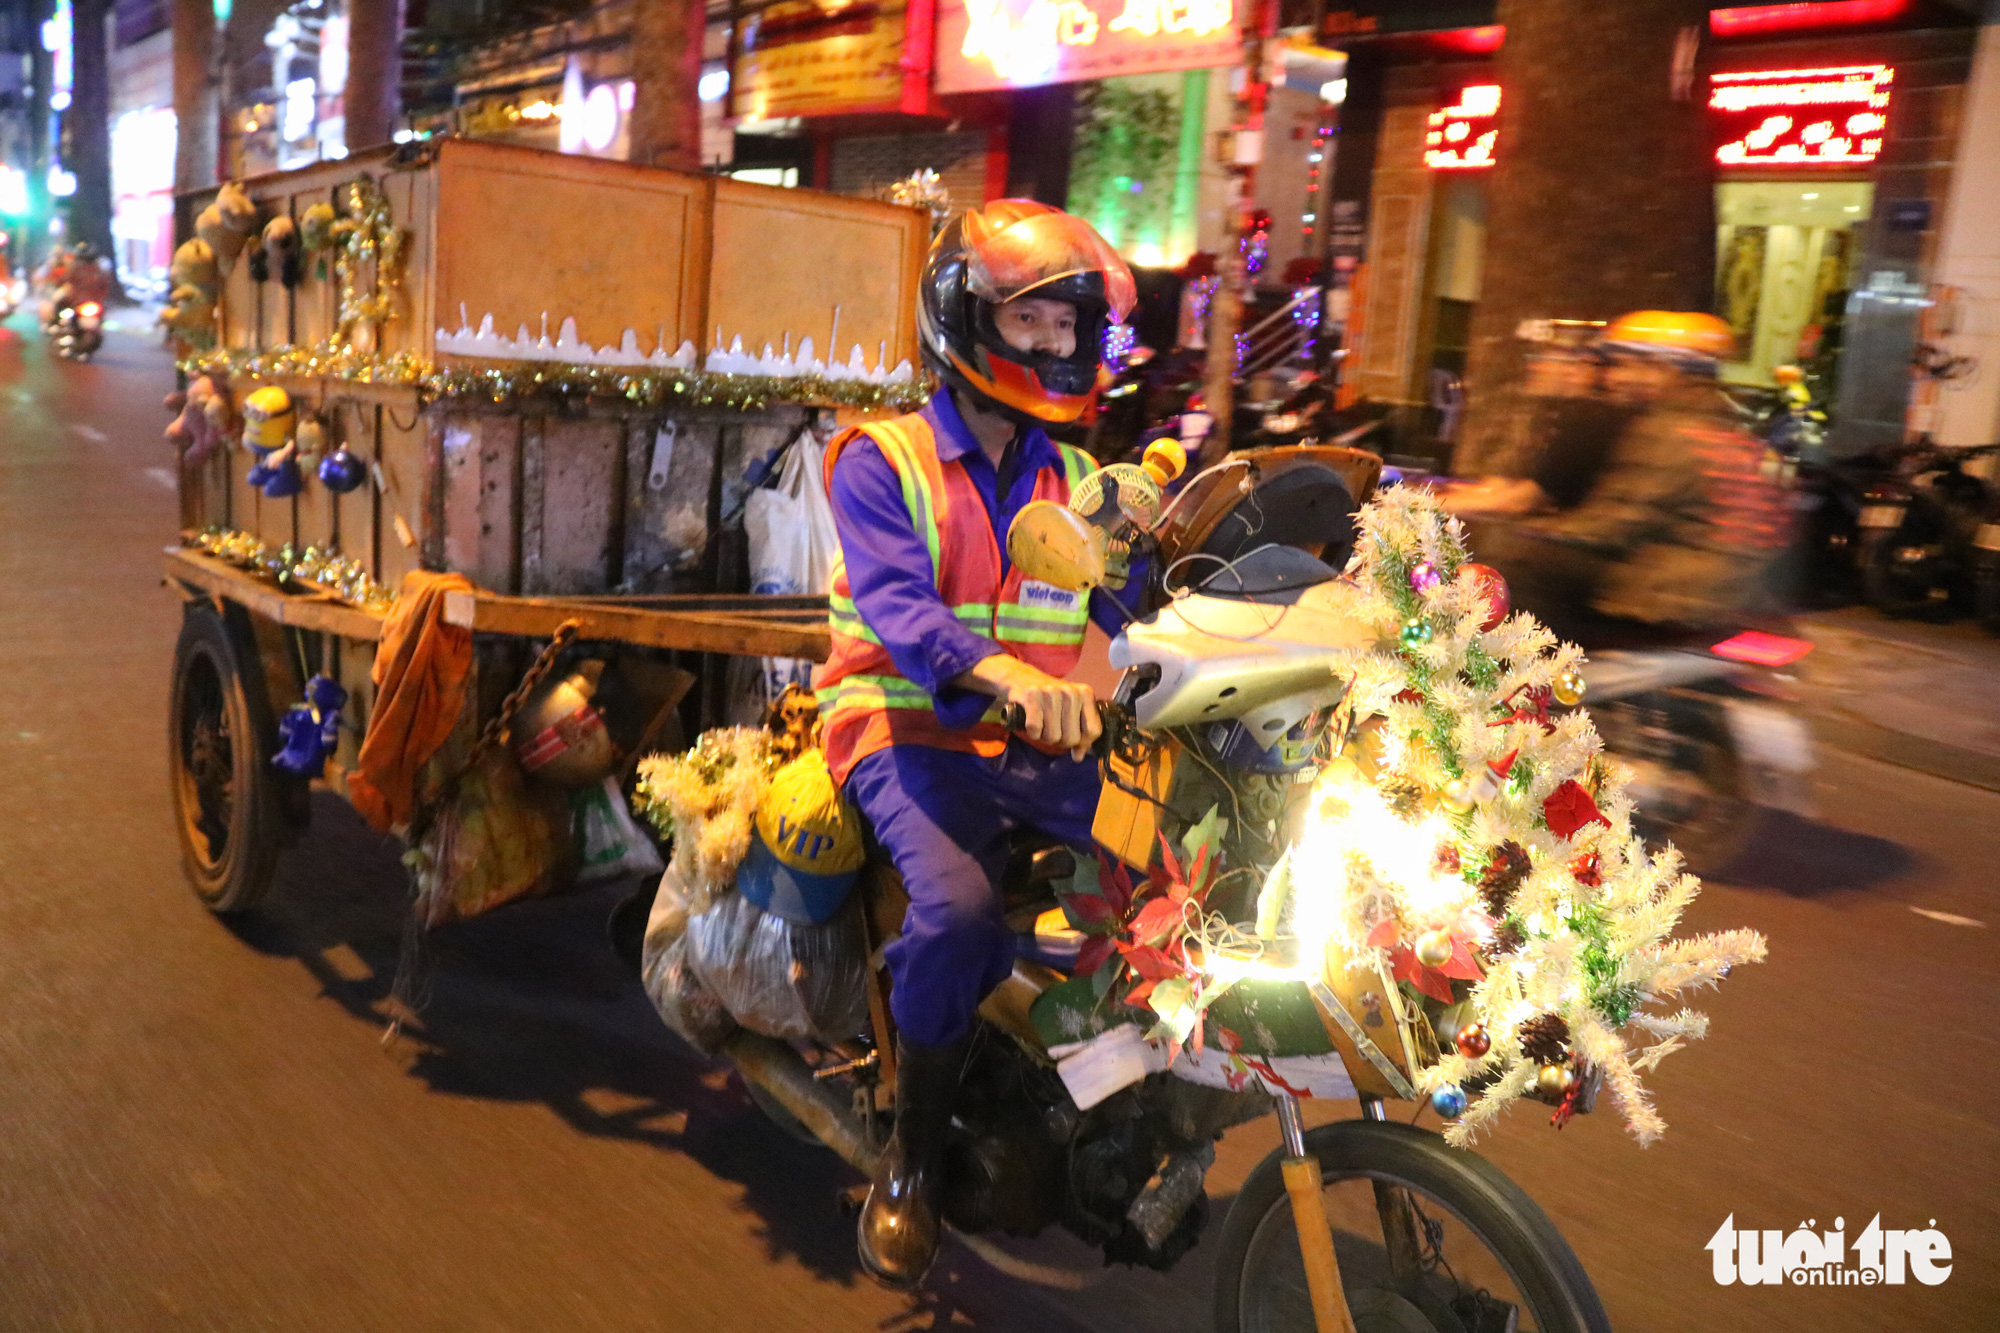 A street sweeper decorates his vehicle with Christmas adornments to celebrate the holiday while working on his shift in downtown Ho Chi Minh City on December 24, 2019.